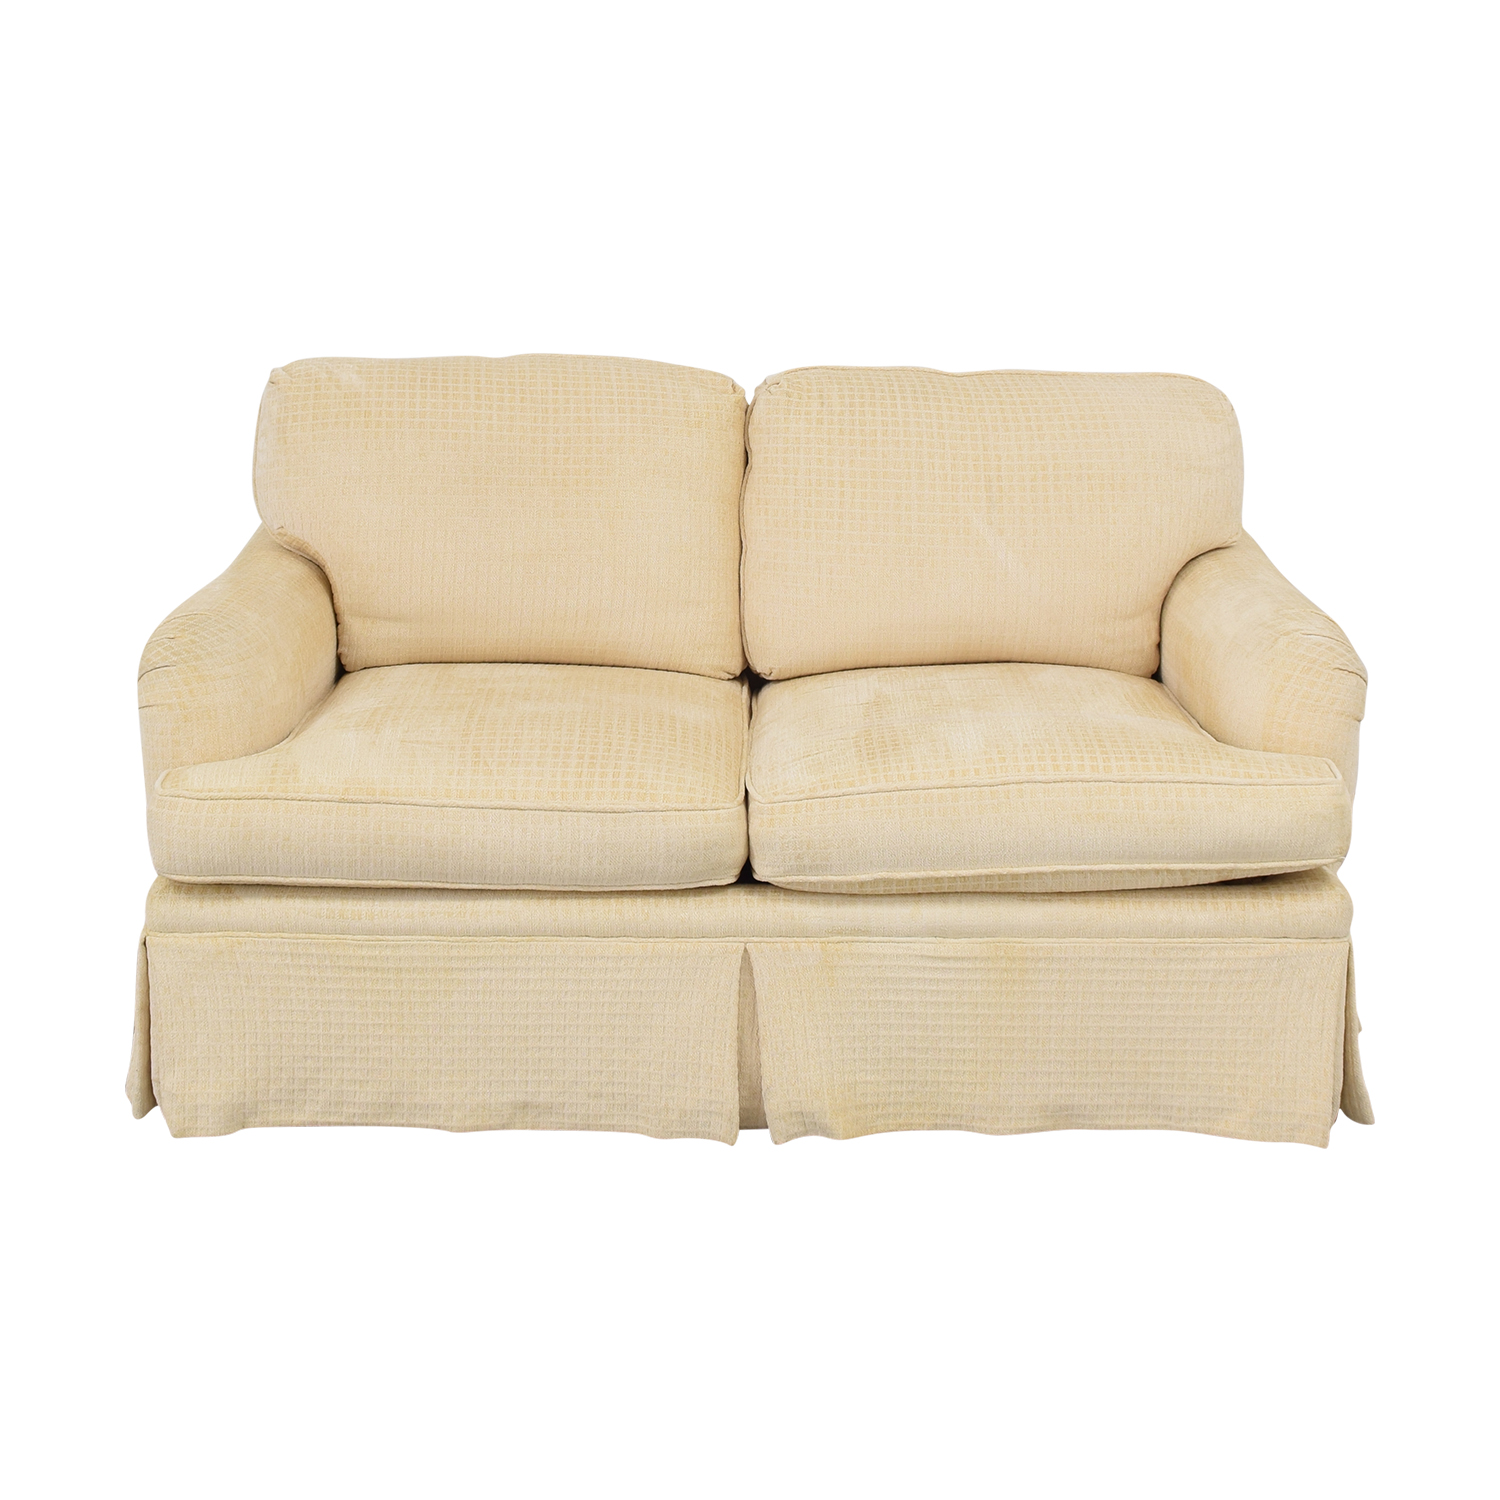 Mason-Art Mason-Art Upholstered Loveseat for sale